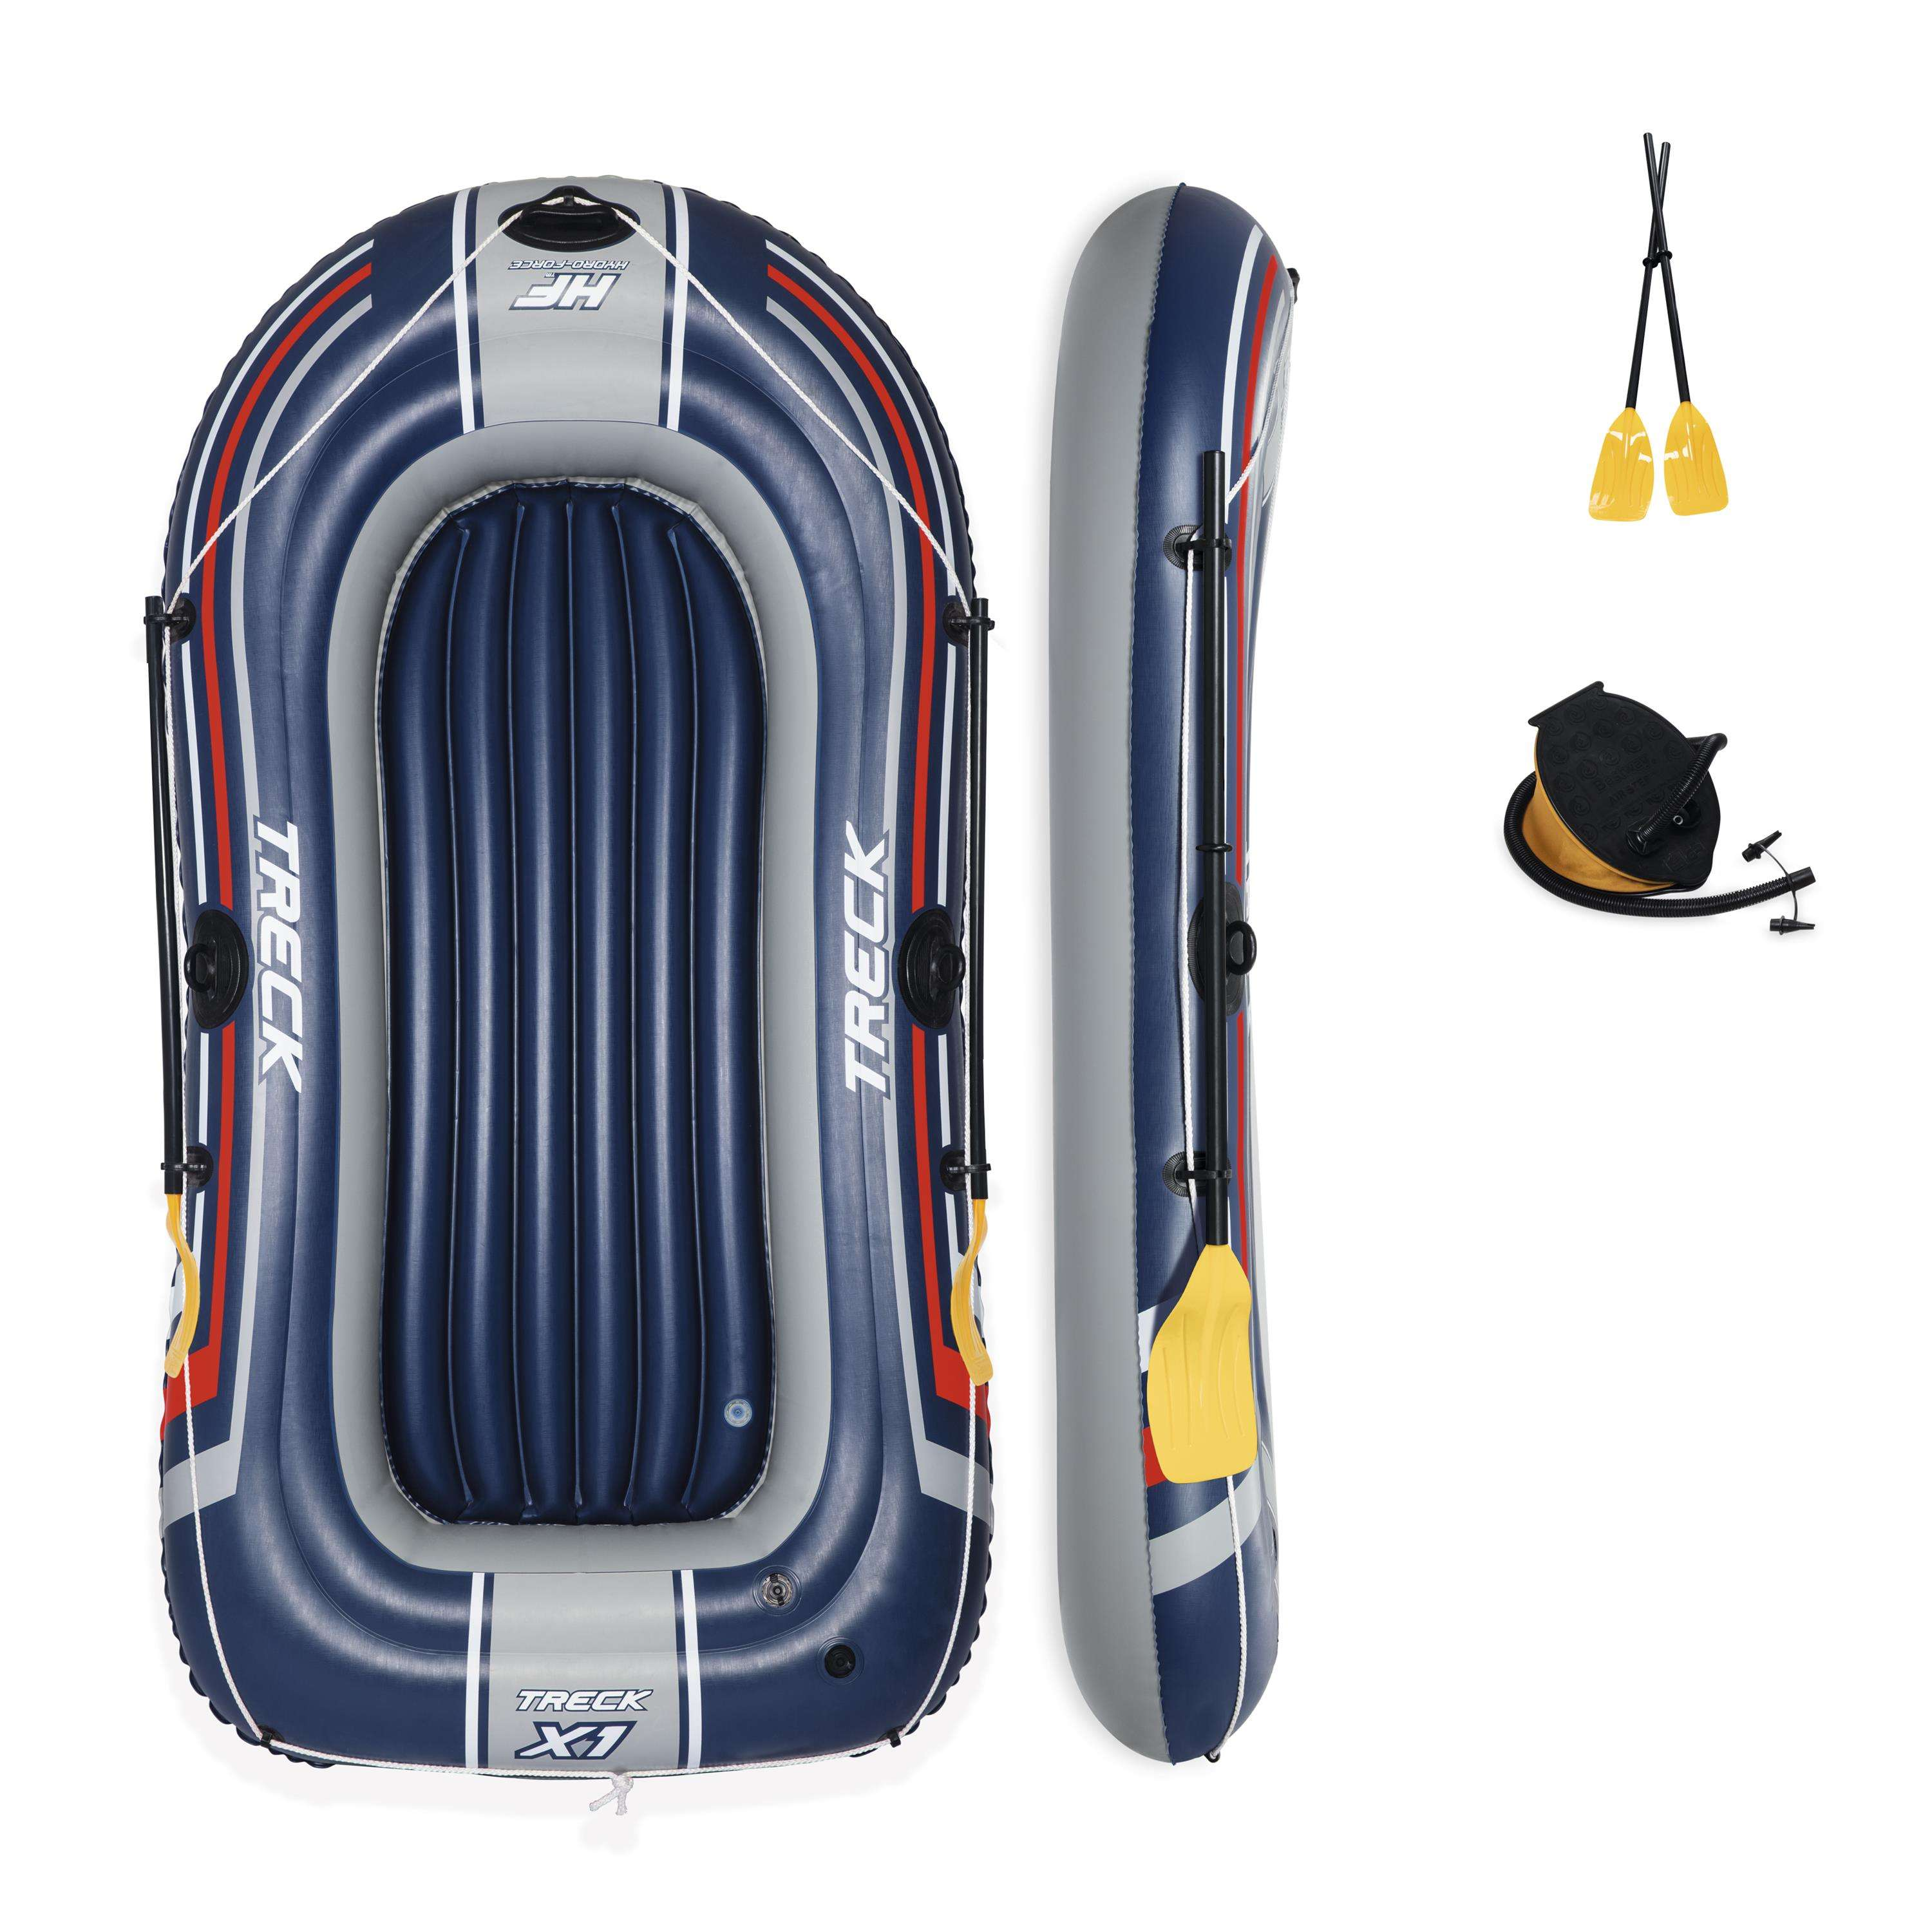 Bestway 61083 Treck x 1 set inflatable sports boat inflatable fishing boat 2.28m x 1.21m